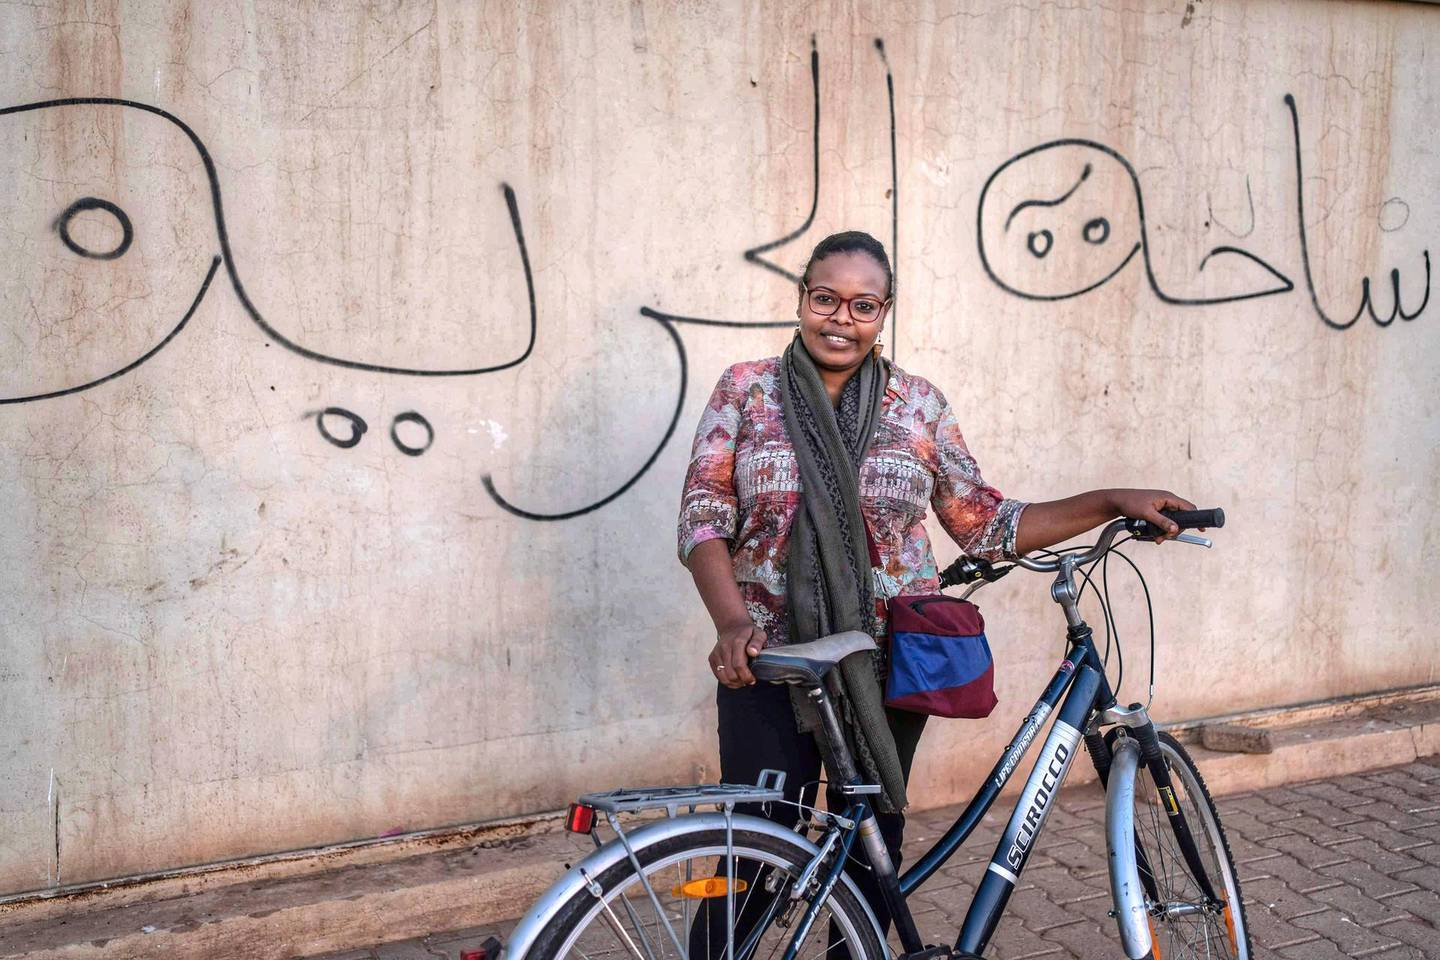 Enass Muzamel has launched a campaign in Khartoum to encourage women to cycle and free themselves from social limitations and taboos. Mrs Muzamel has been threatened to be lashed by young men for her initiative and for not wearing a headscarf. Courtesey: Enass Muzamel for The National